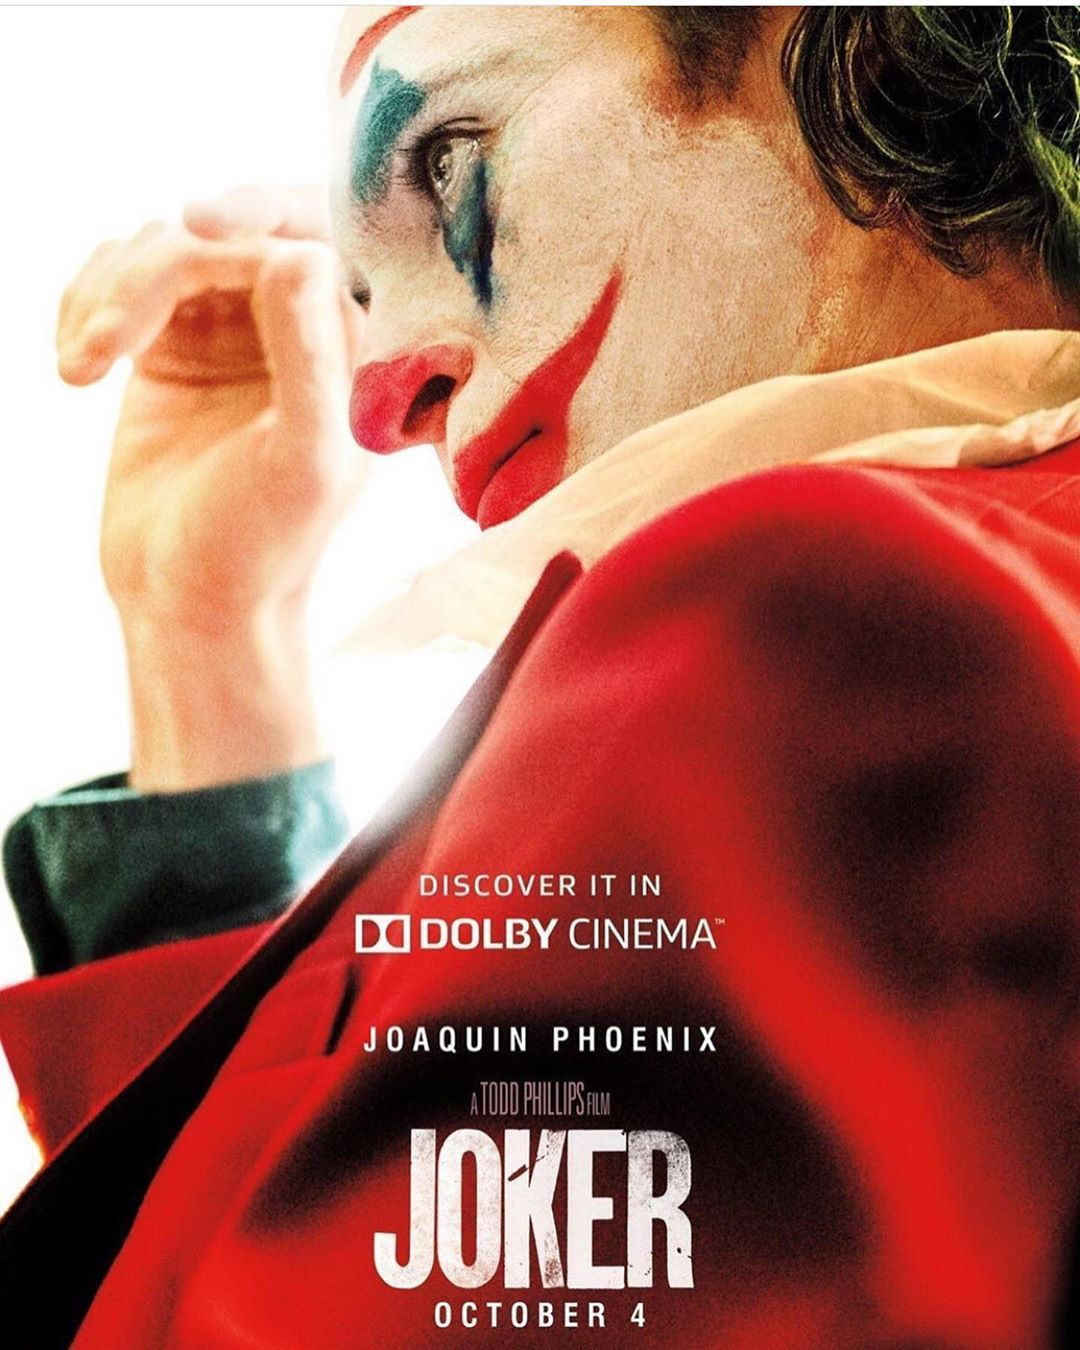 New New Promotional Movie Posters Joker Thejoker Jokercosplay Beforeandafter Makeup Joker Poster Joker Film Joker Full Movie